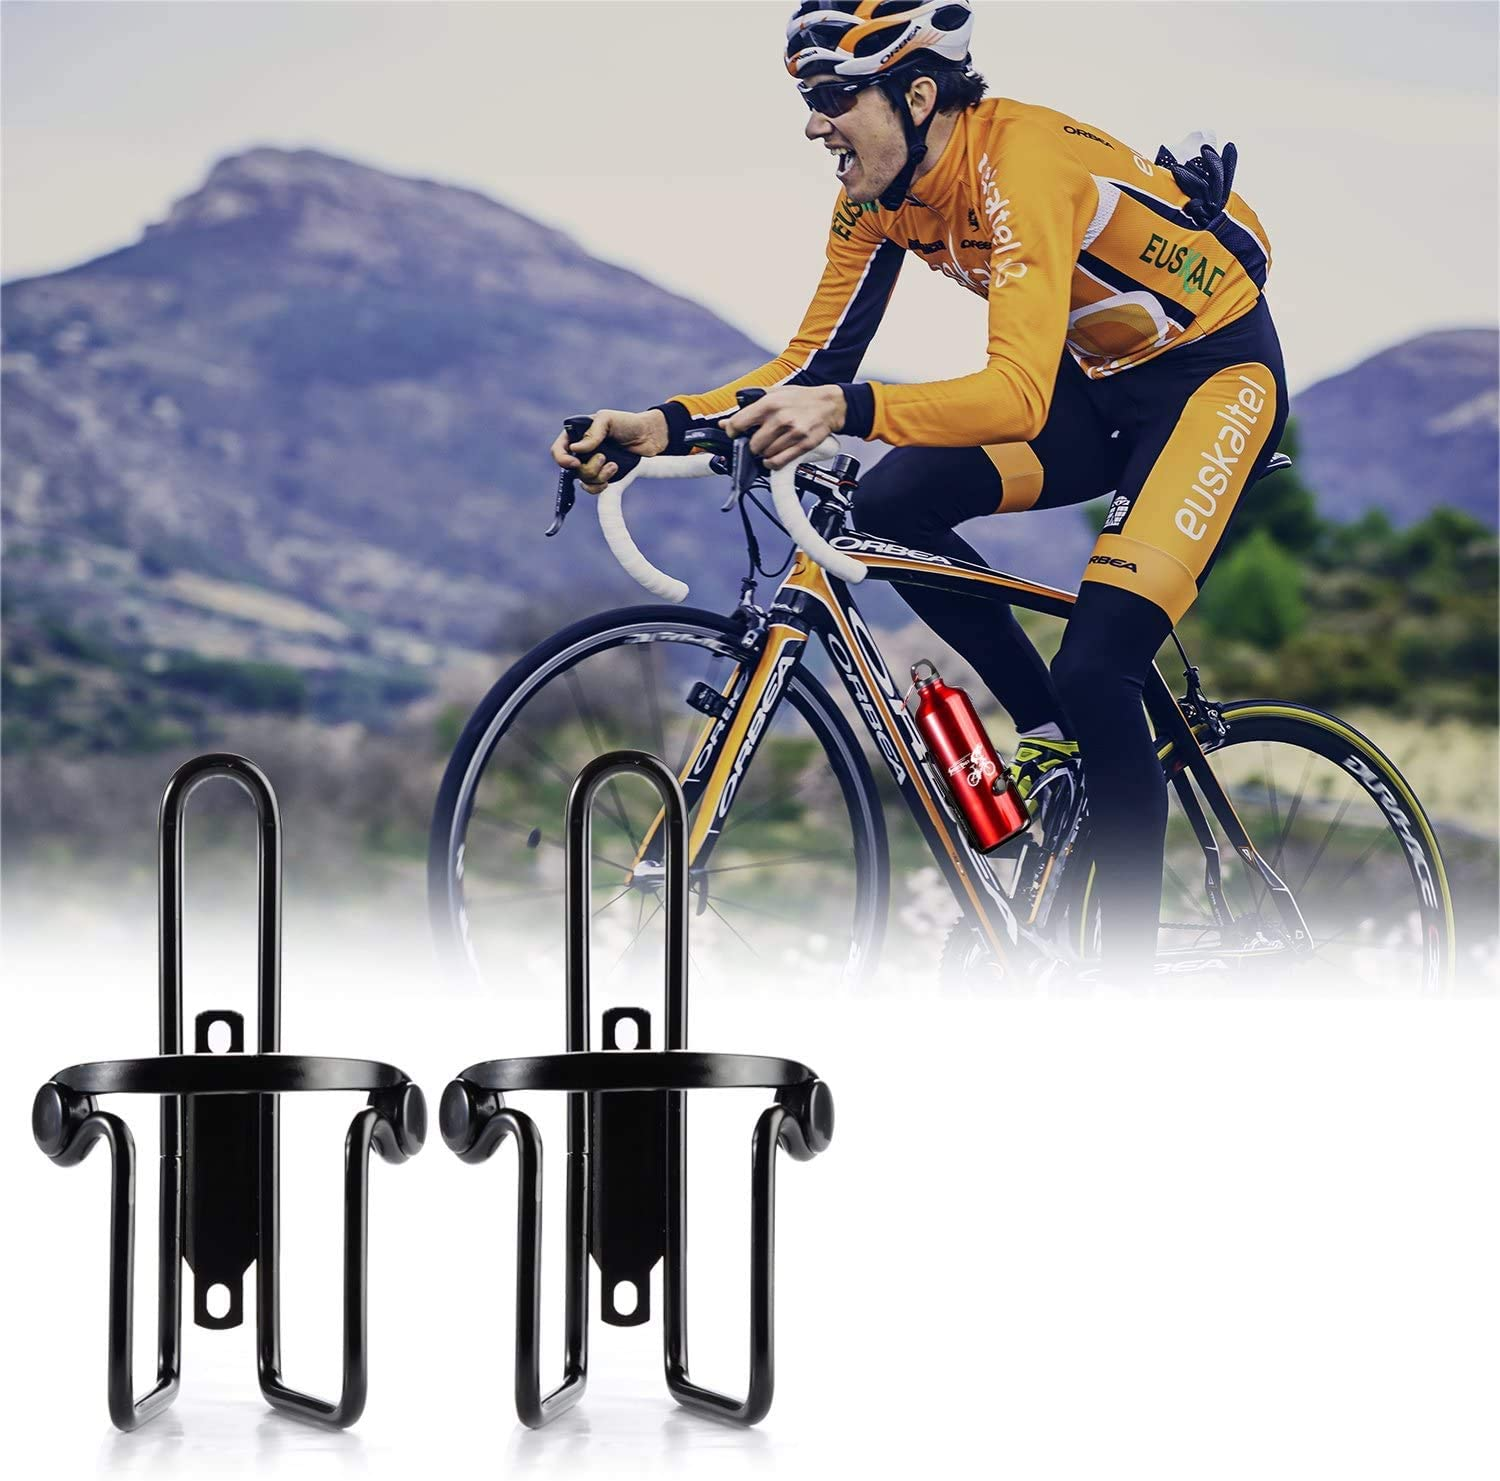 bike bottle cage aluminum alloy integrated molding mtb road bike cycling water bottle cage bottle holder bicycle accessories Bicycle Water Bottle Holder Aluminum Alloy Bike Bottle Cage Universal MTB Road Bike Bottle Holder Outdoor Cycling Accessories